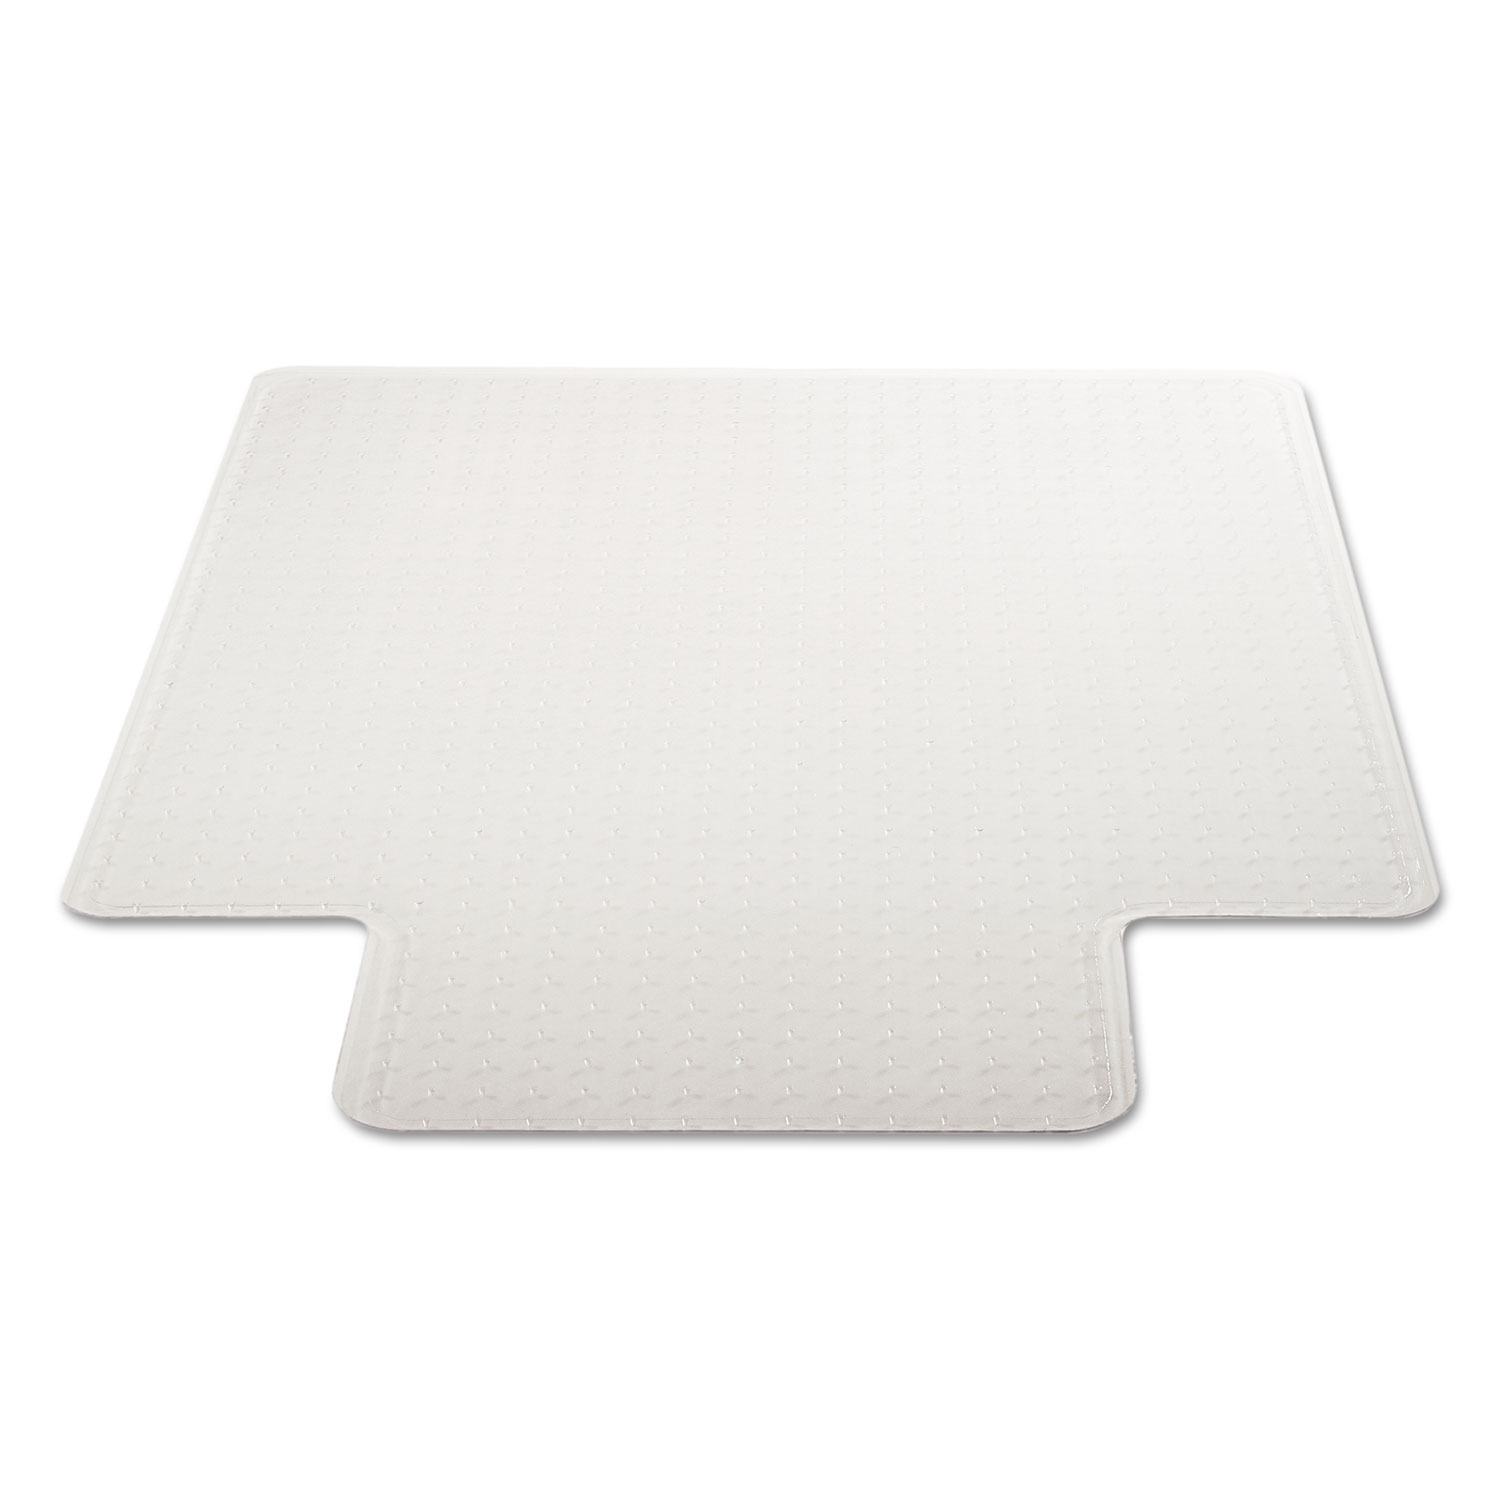 Duramat Moderate Use Chair Mat For Low Pile Carpet By